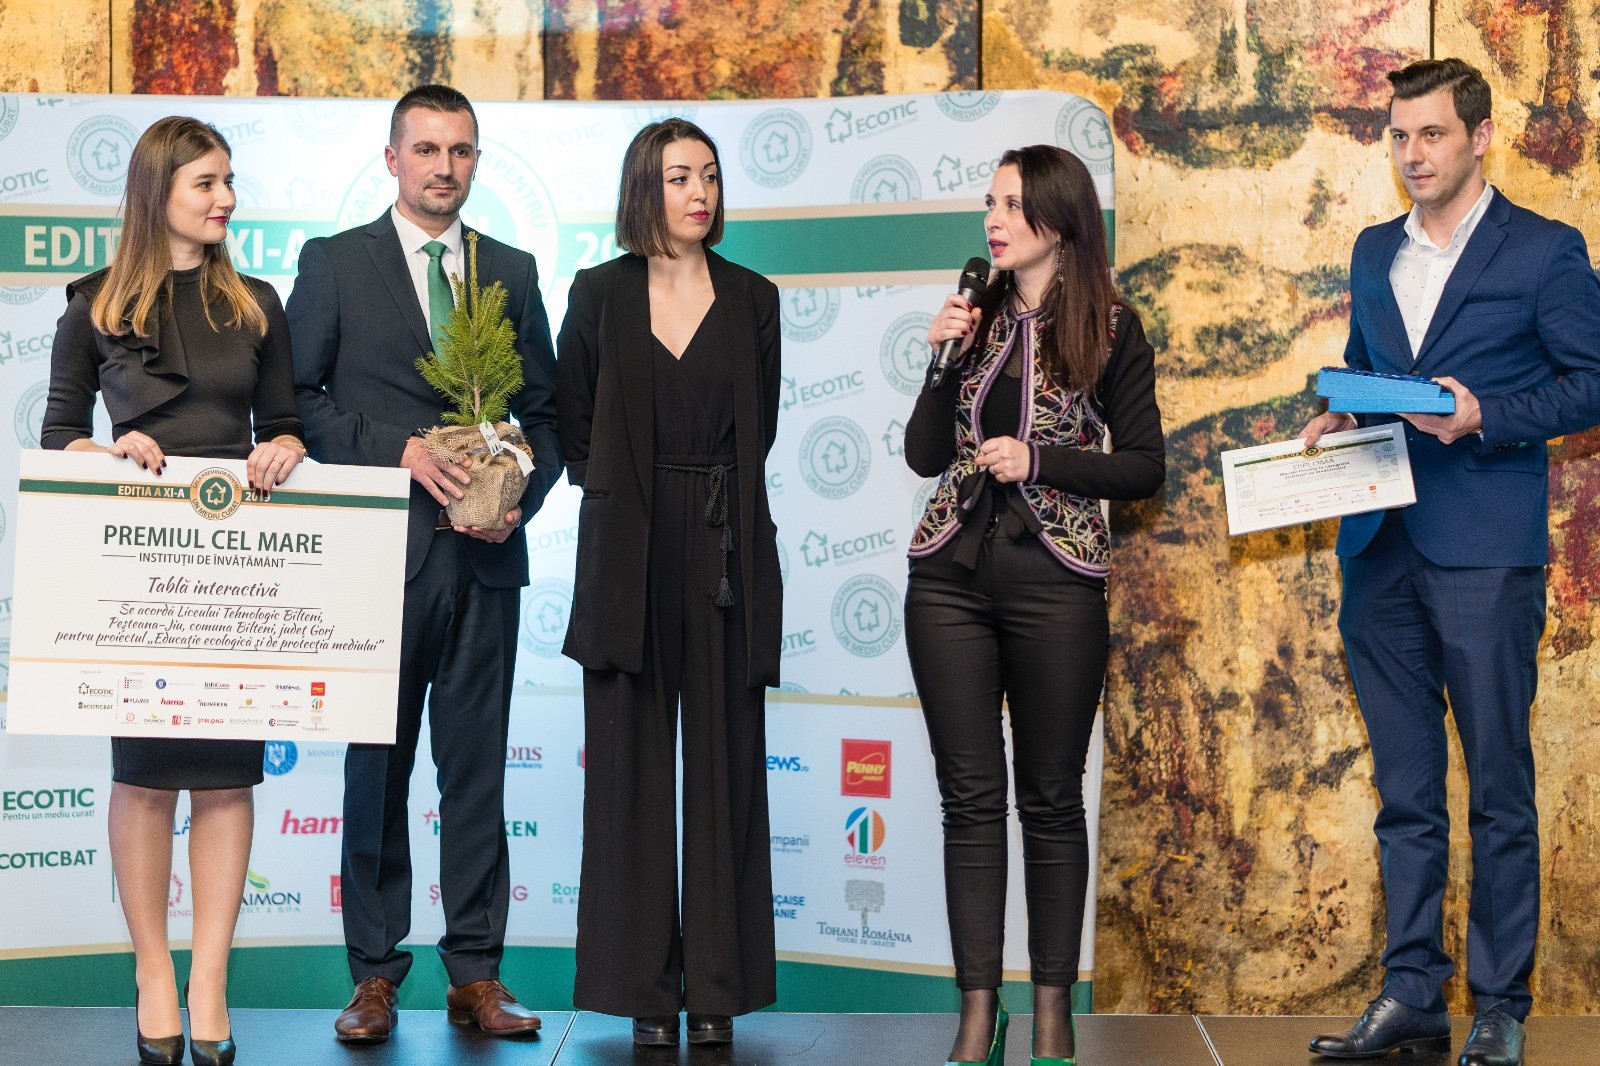 The 2019 Clean Environment Awards Gala announced its winners